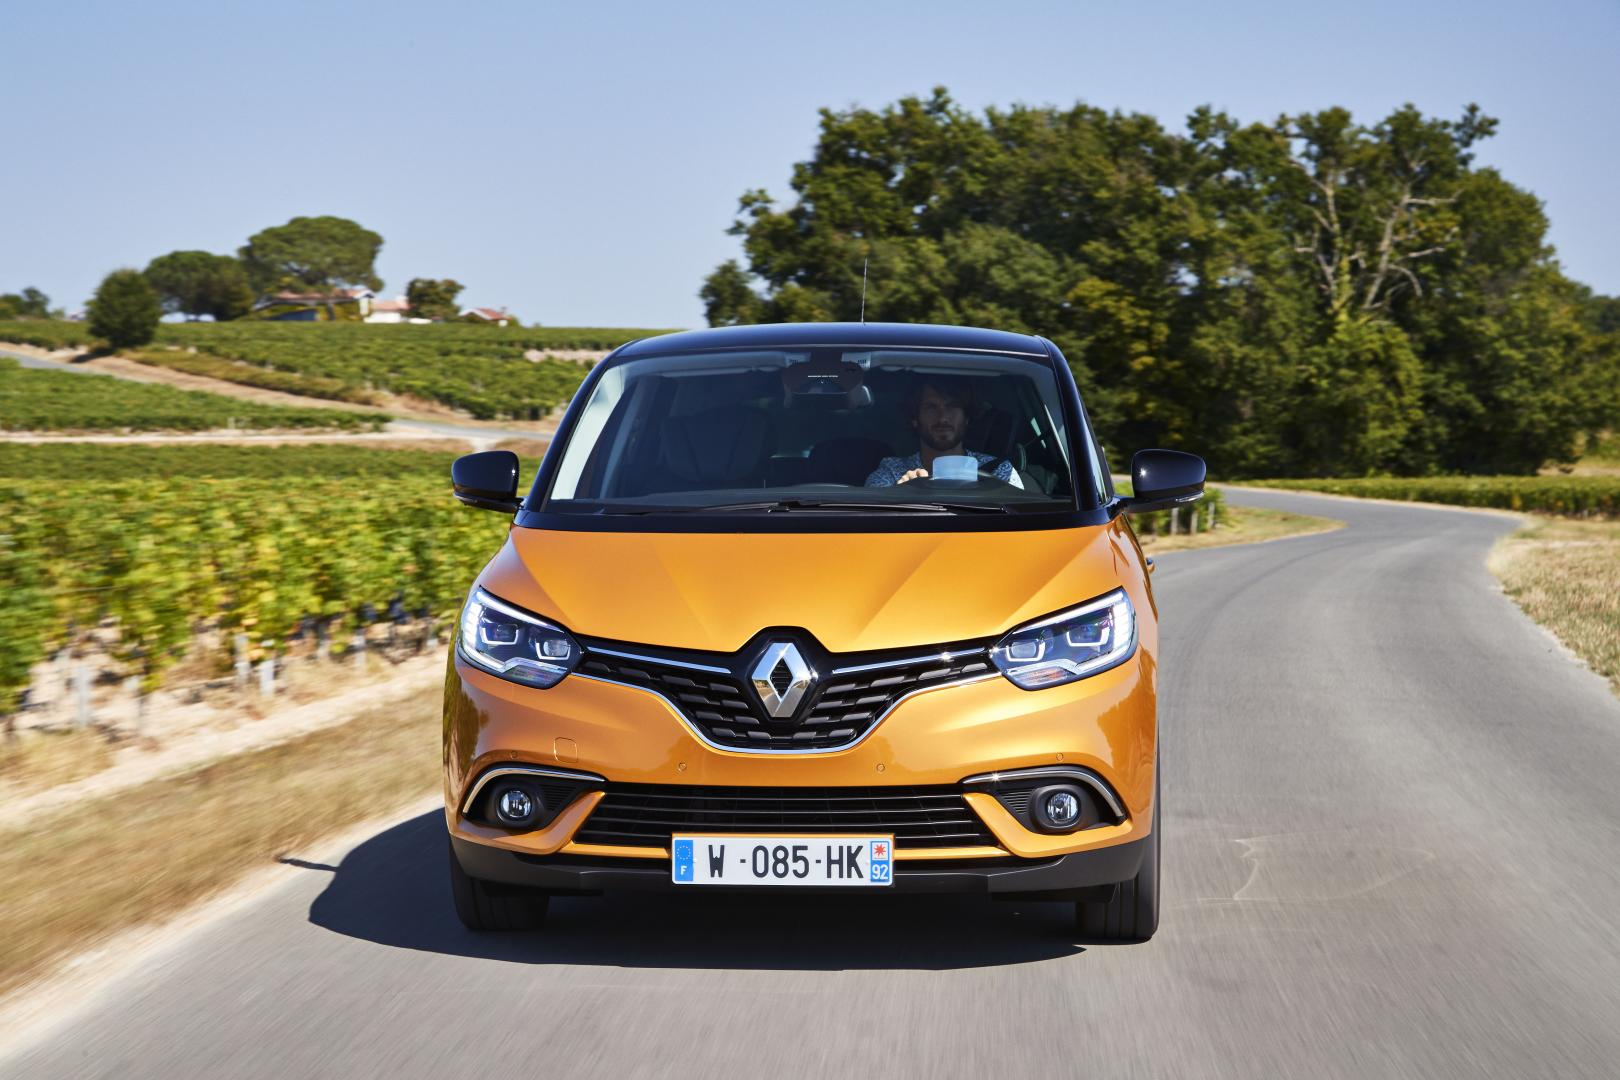 renault sc nic tce 130 bose autotest en specificaties nieuw doel. Black Bedroom Furniture Sets. Home Design Ideas